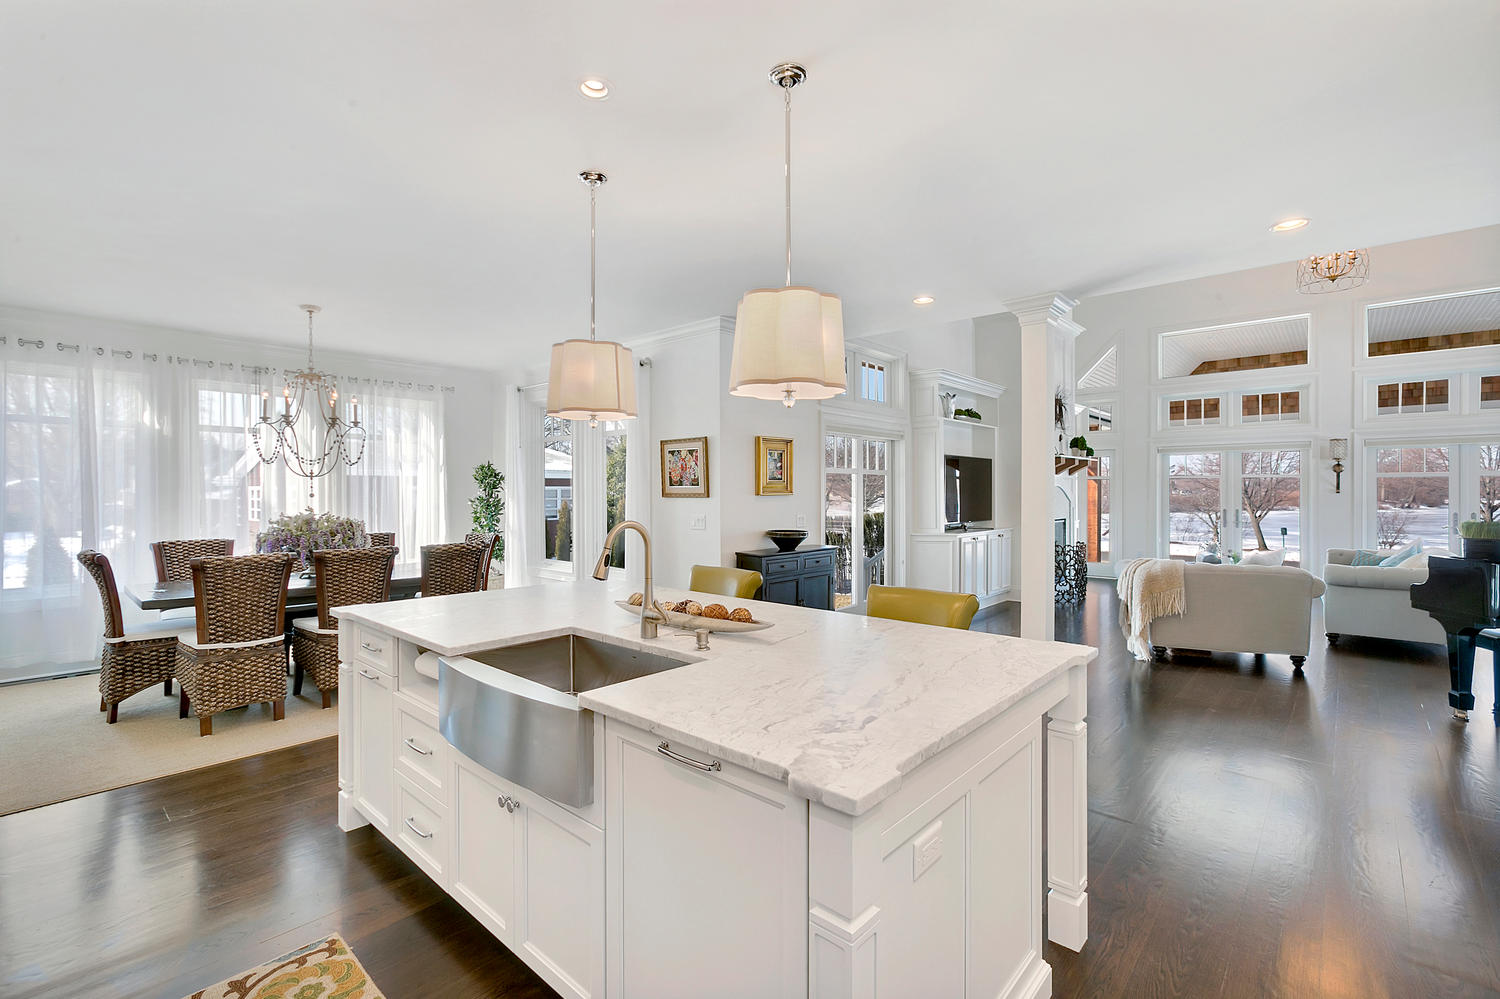 White Custom Kitchen Islands kitchen islands & peninsulas | design line kitchens in sea girt, nj